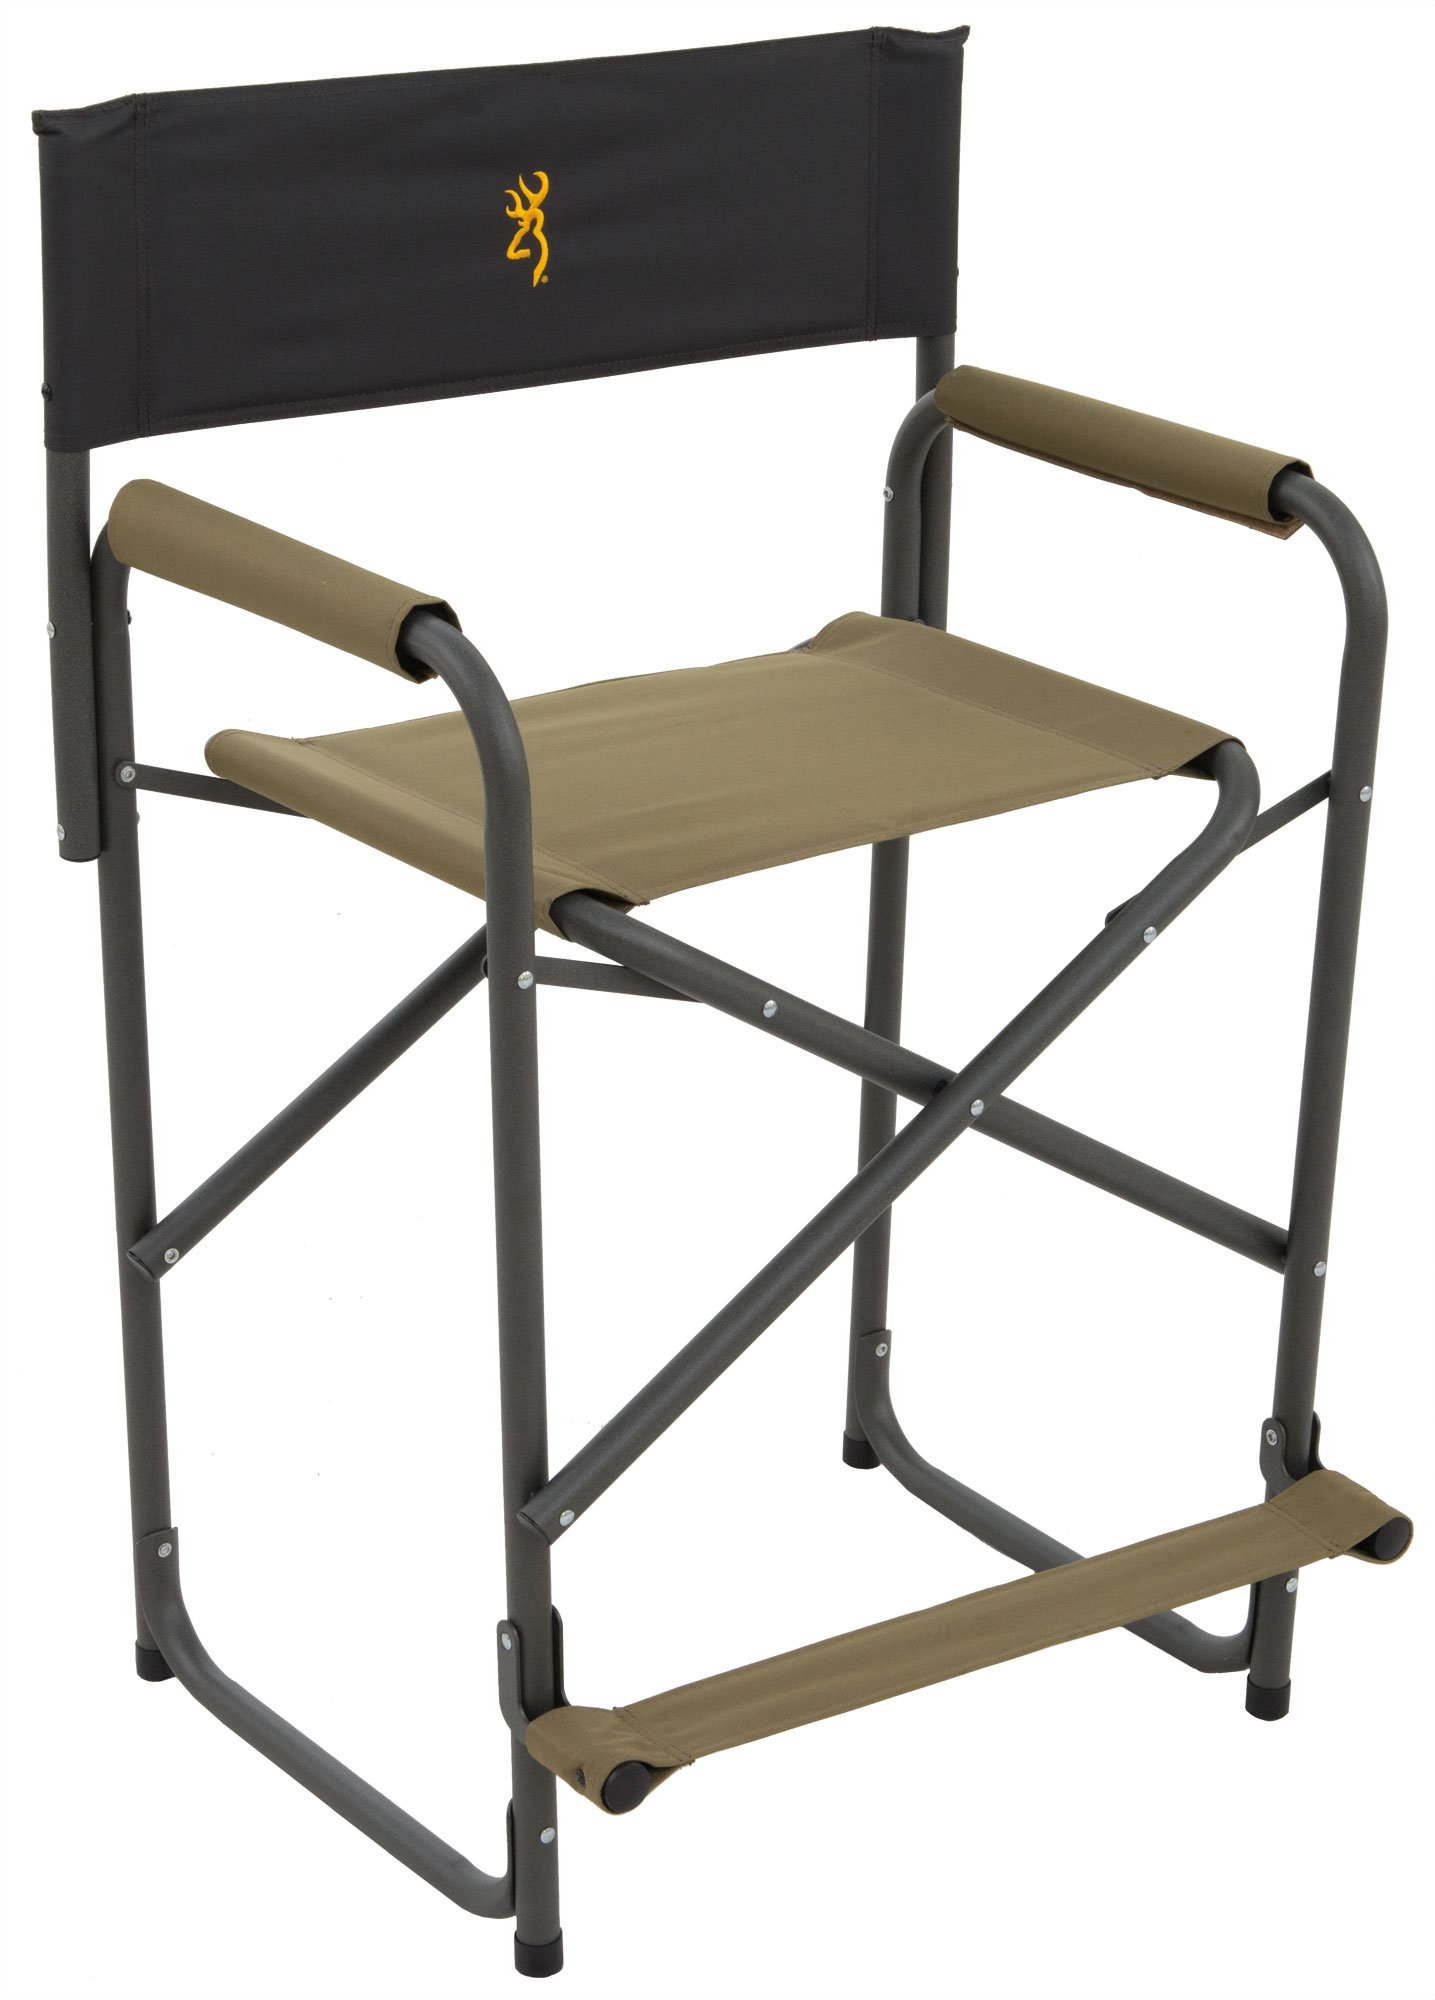 Browning Camping Directors Chair XT by Browning Camping